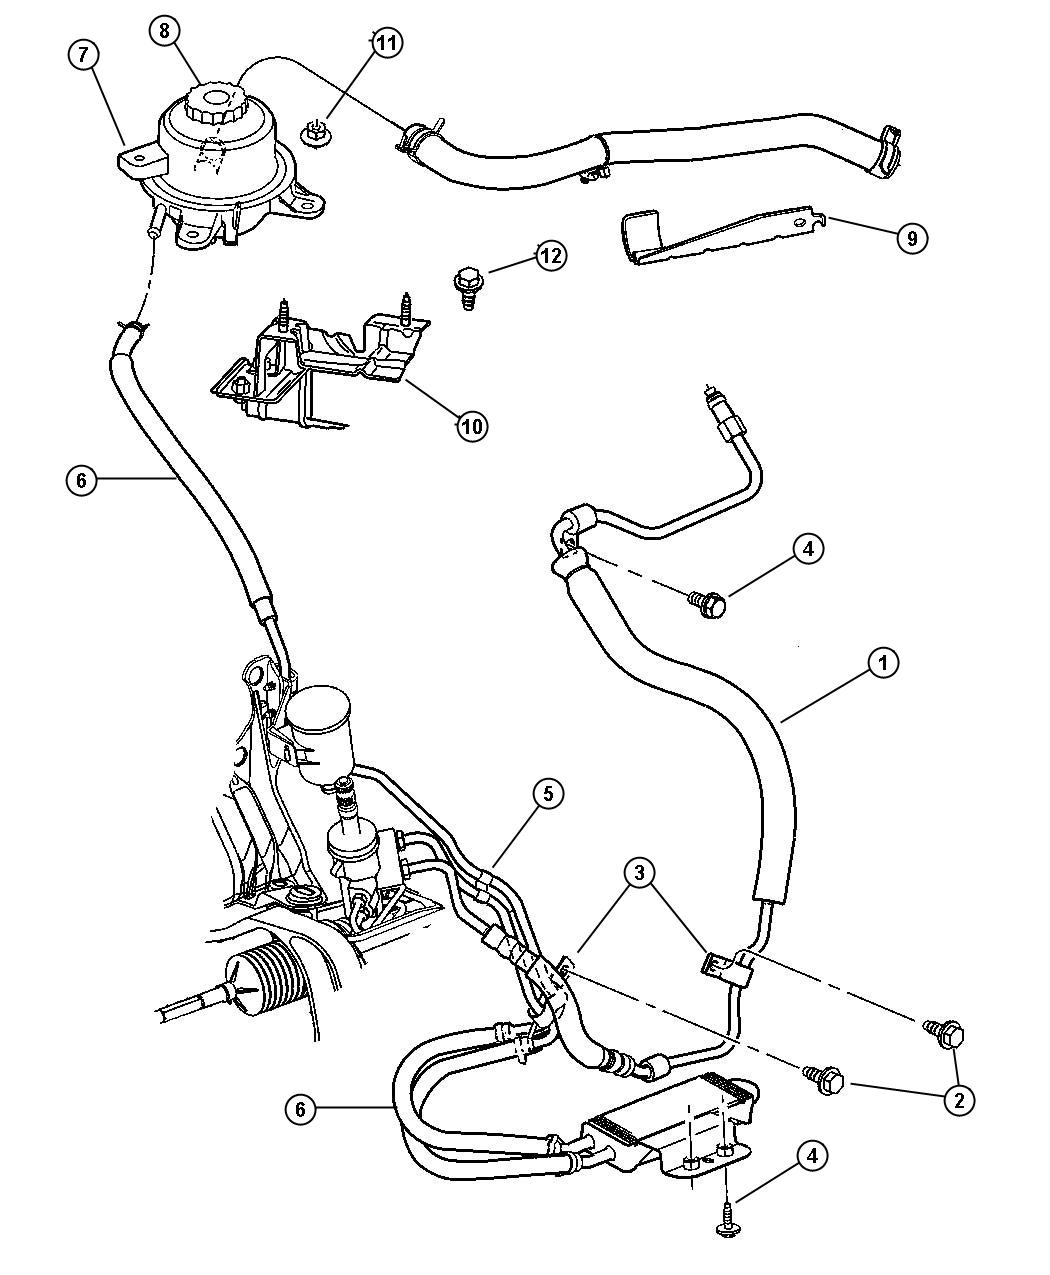 2001 Chrysler Town & Country Hoses, Power Steering, 3.5L